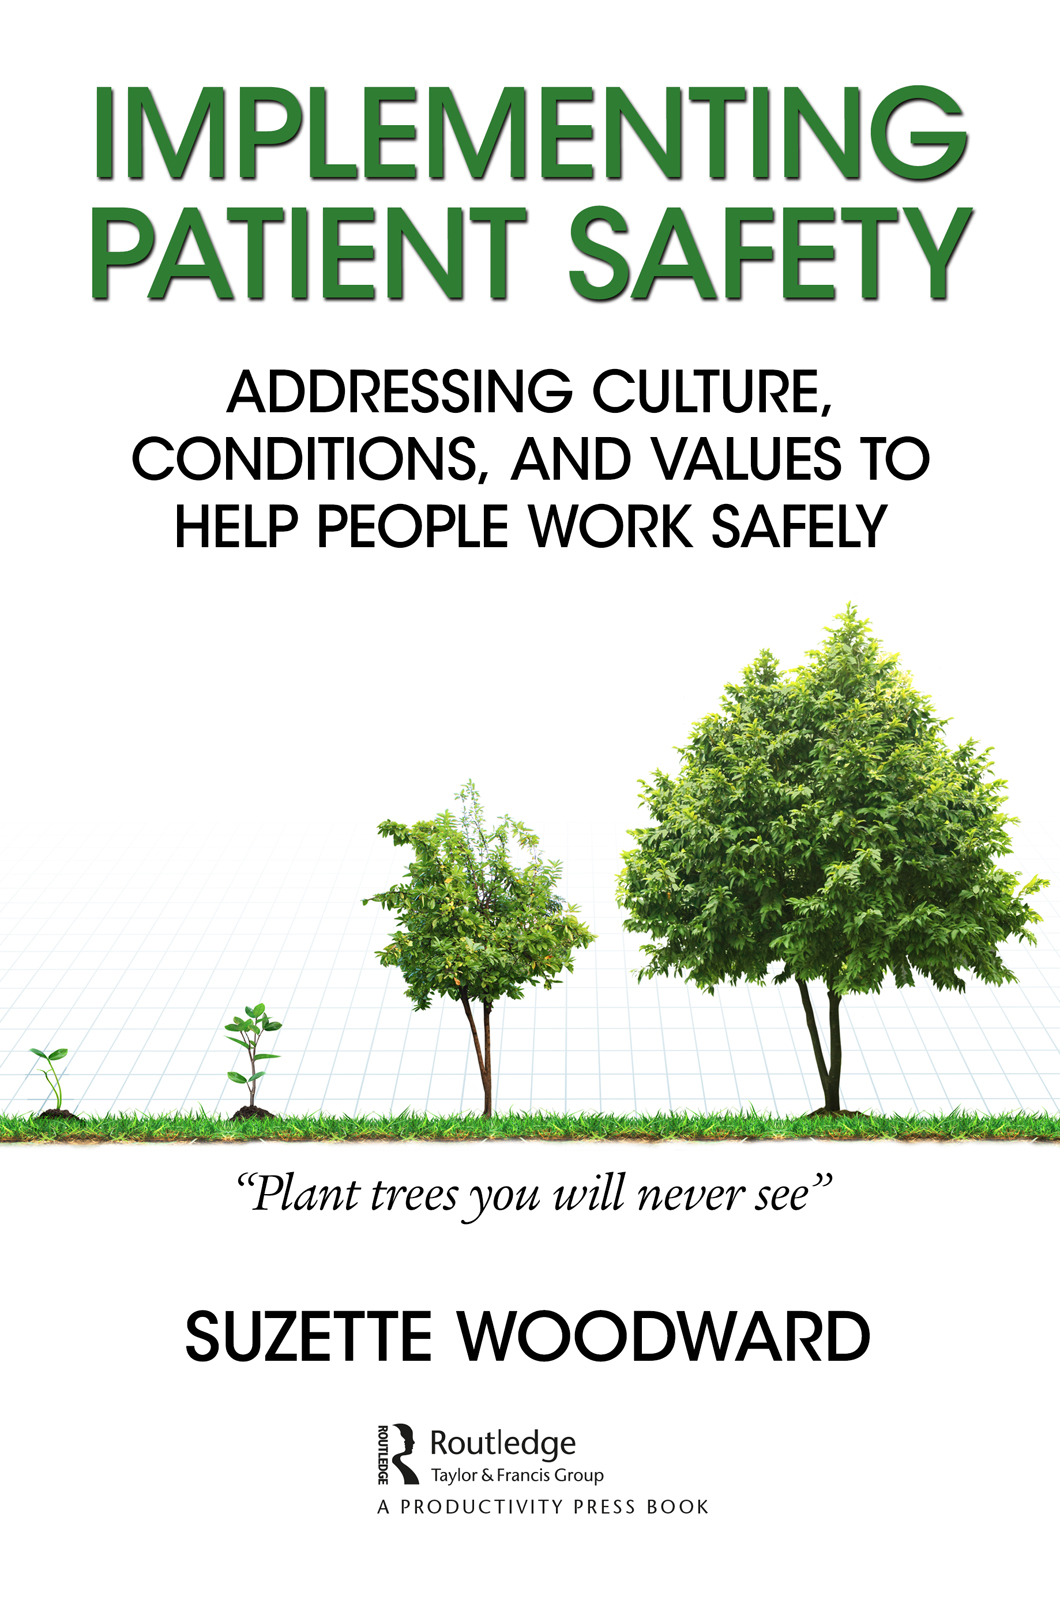 Implementing Patient Safety: Addressing Culture, Conditions and Values to Help People Work Safely book cover